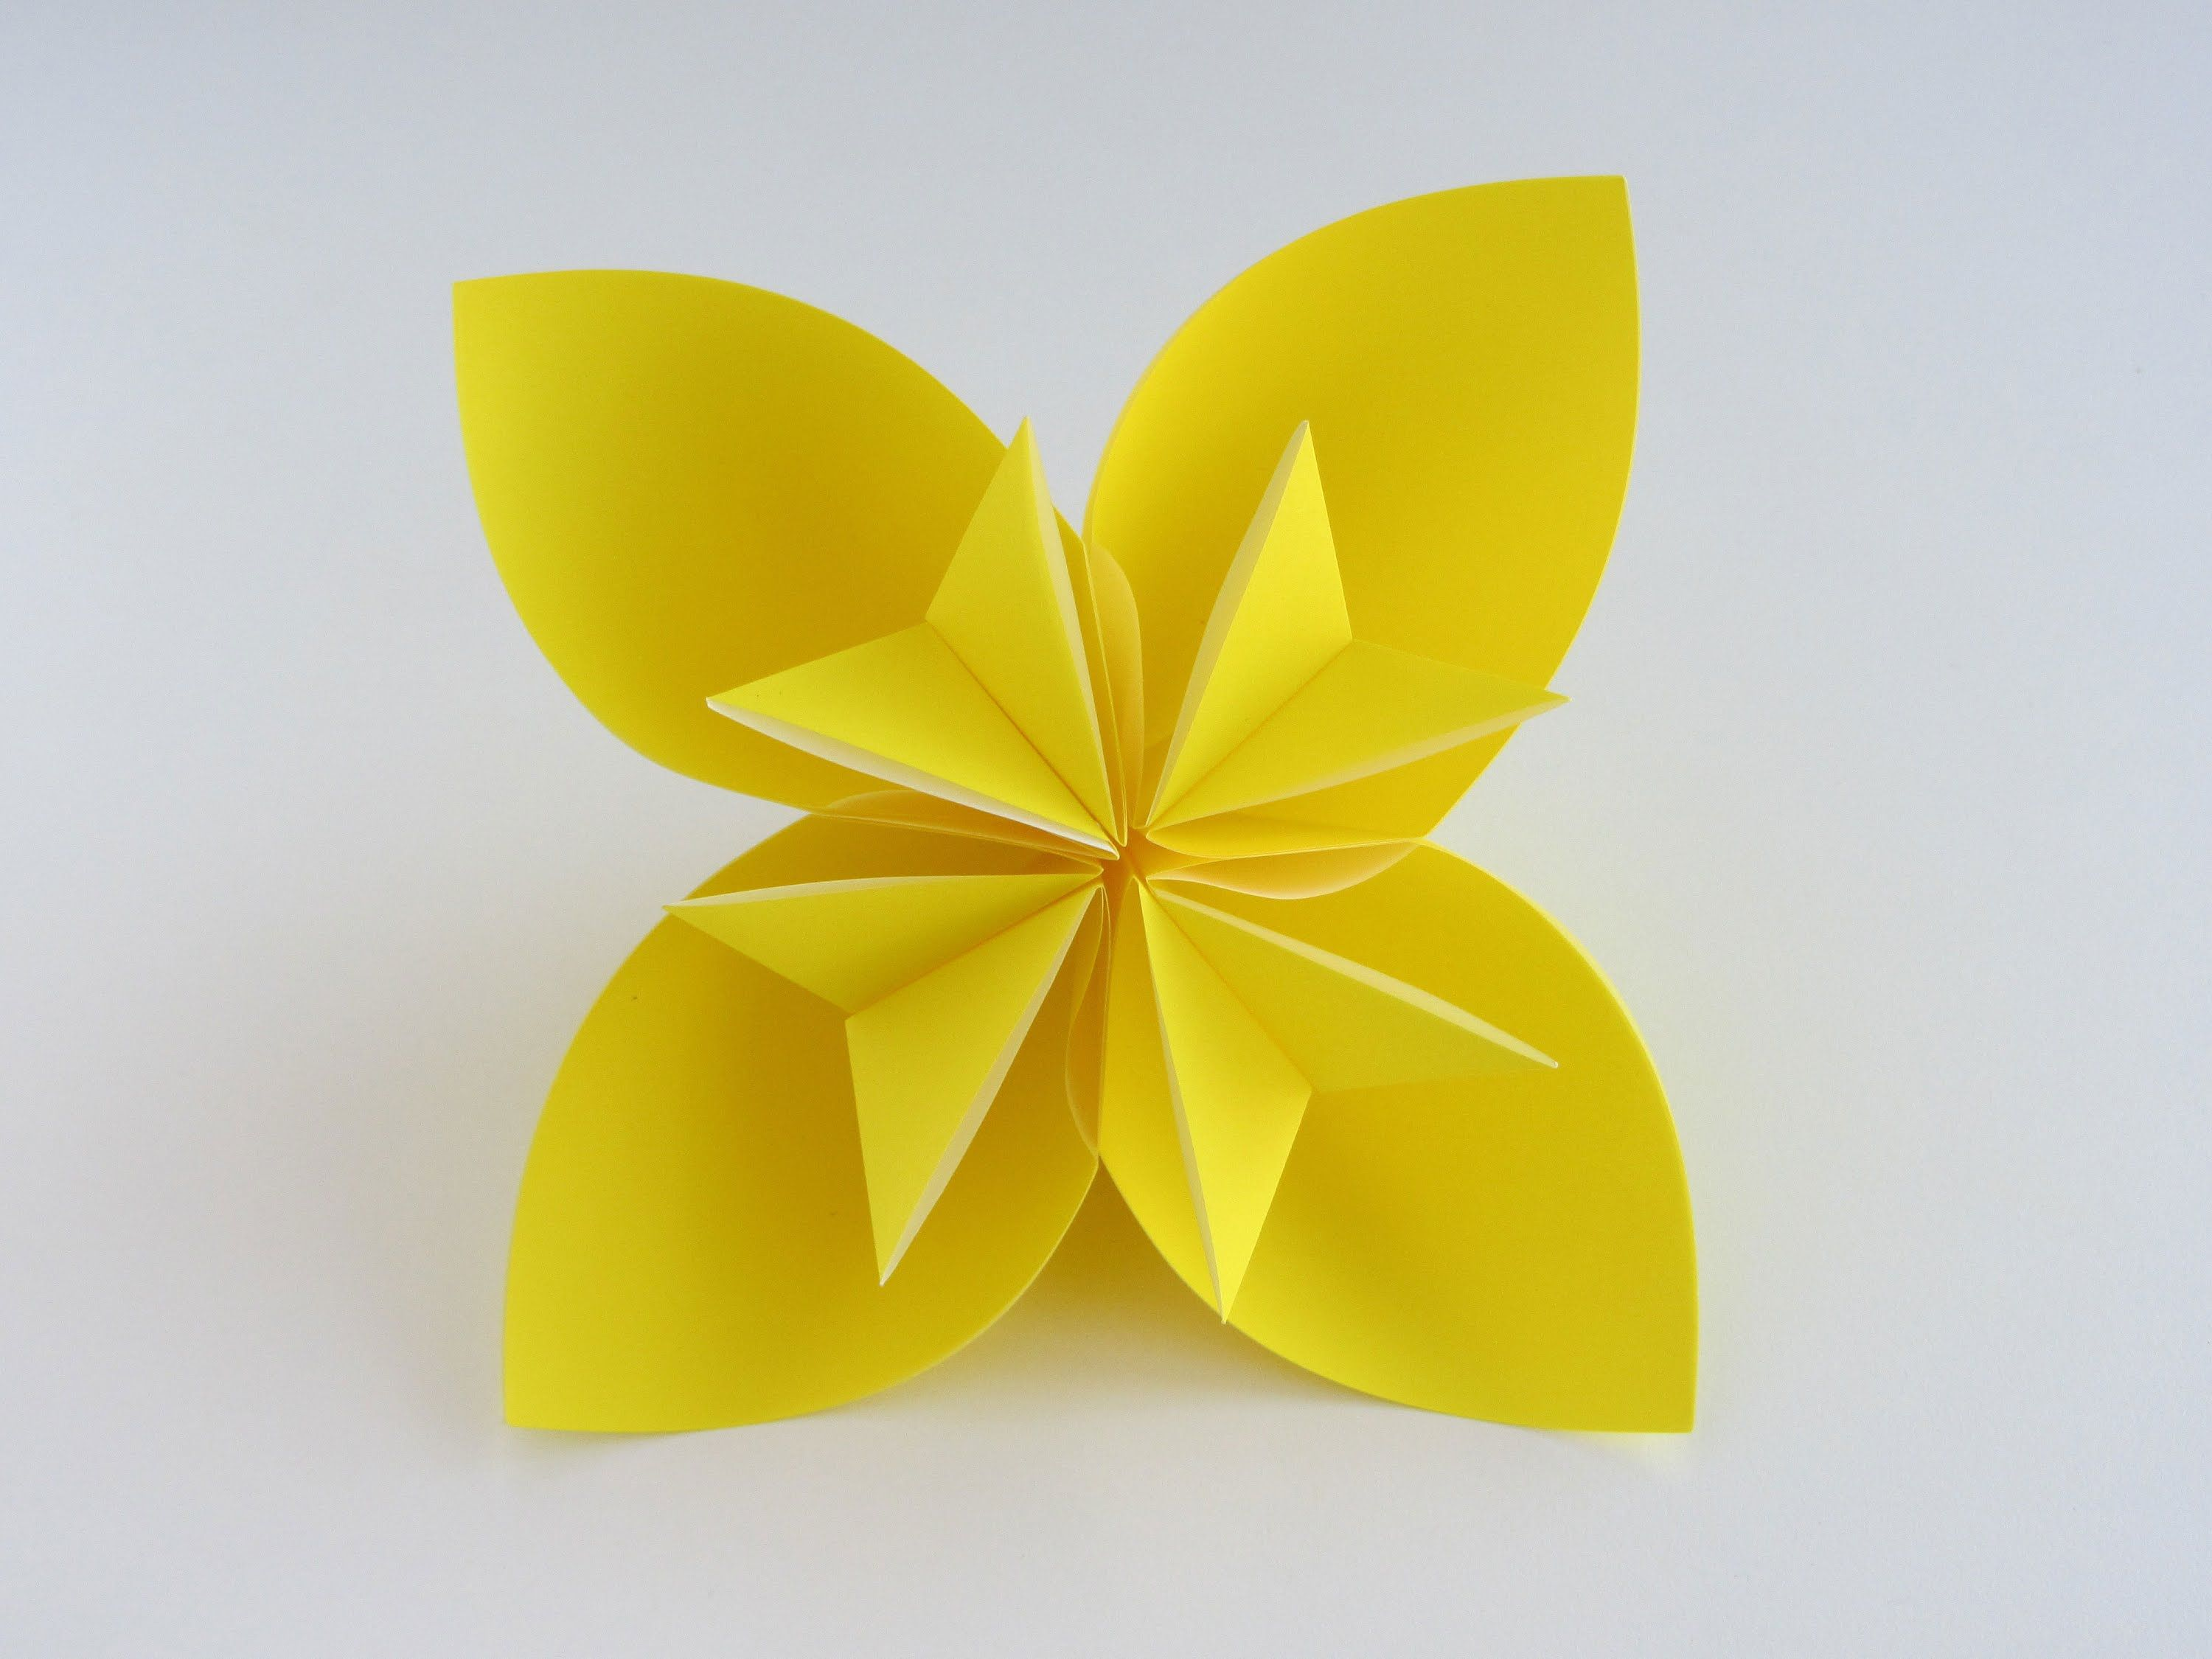 How To Make The Easy Origami Kusudama Flower Step By Step